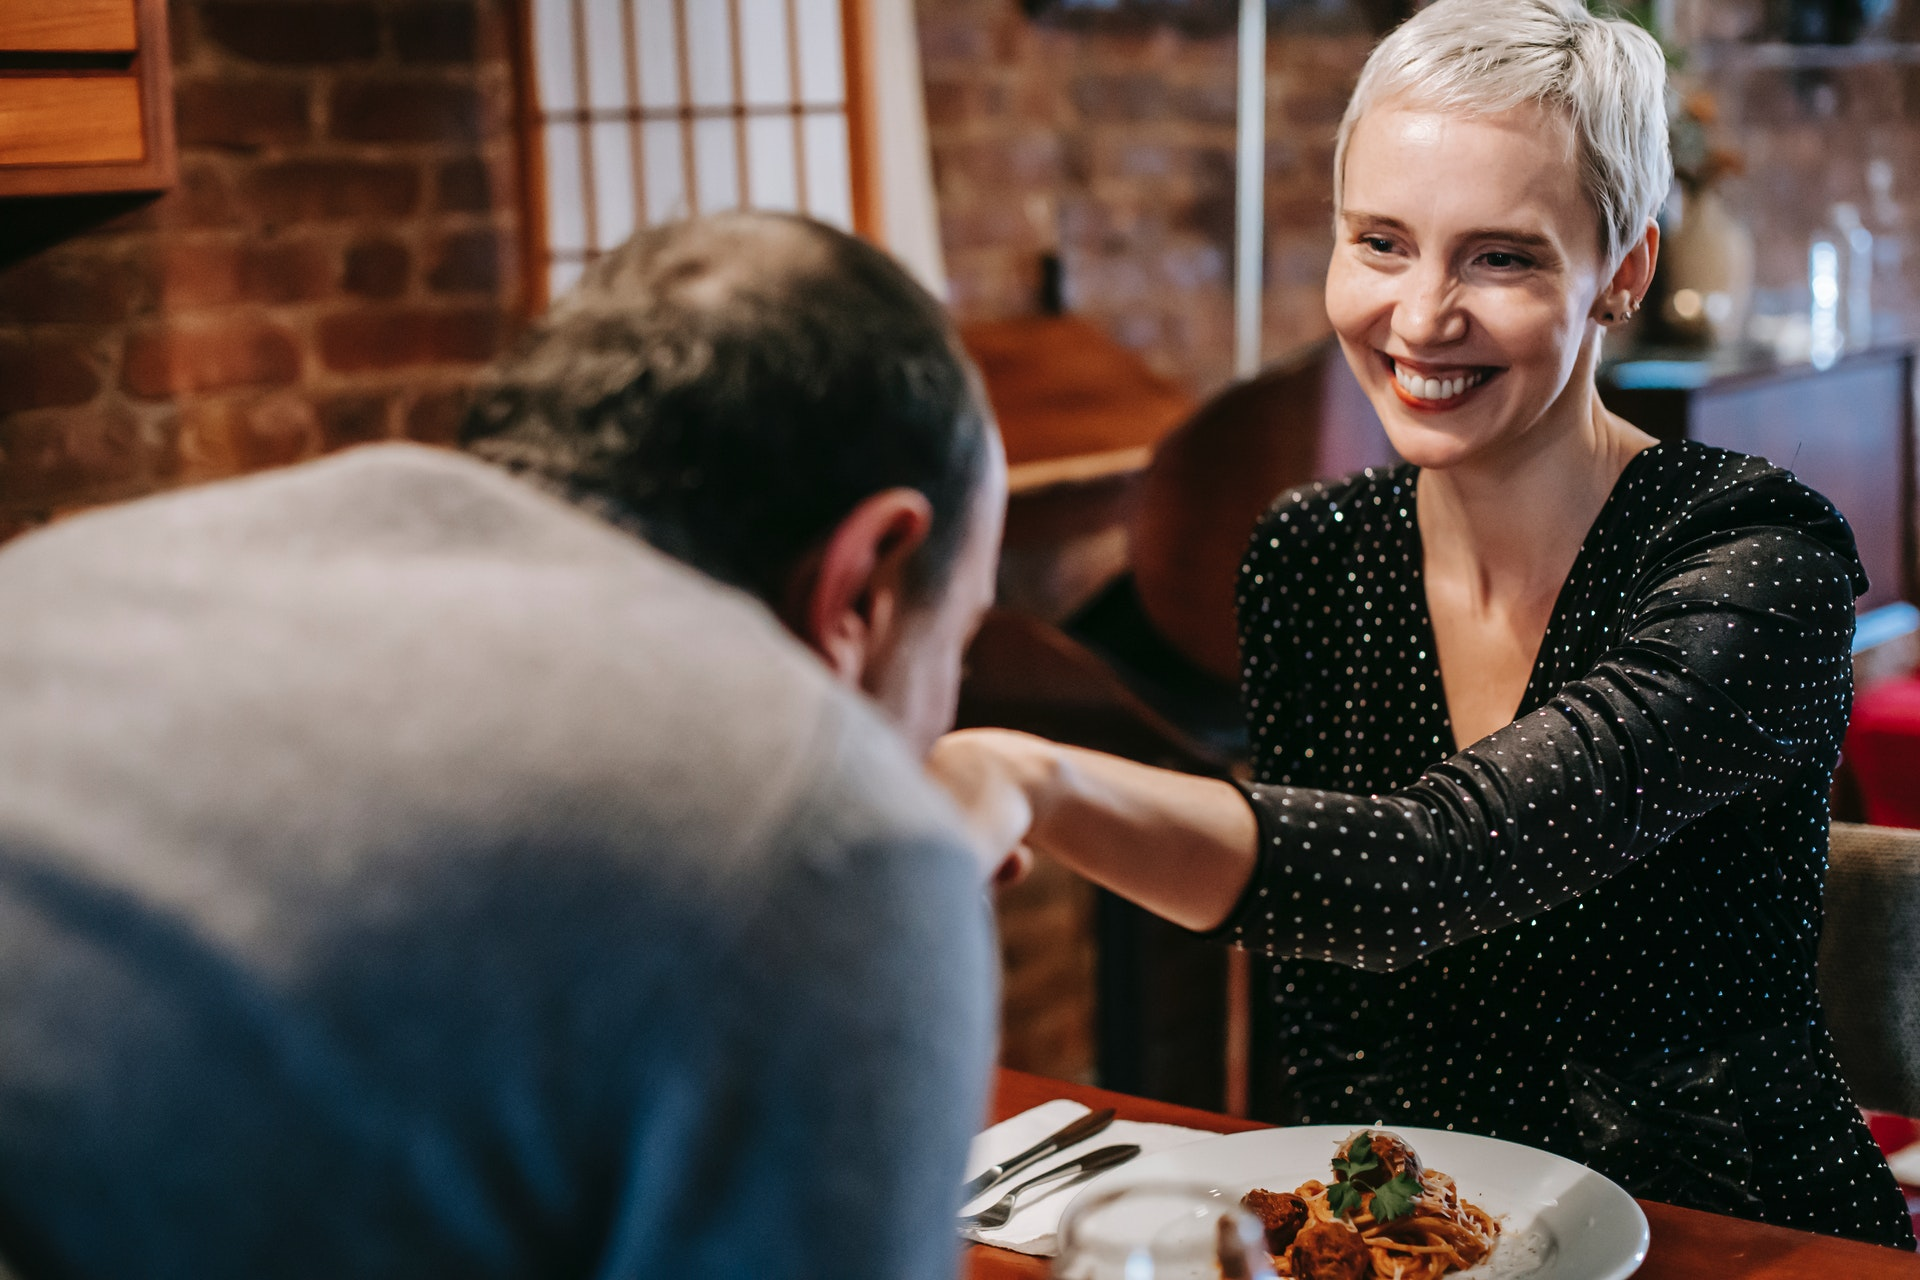 a couple having dinner in a restaurant and the man kissing the woman's hand